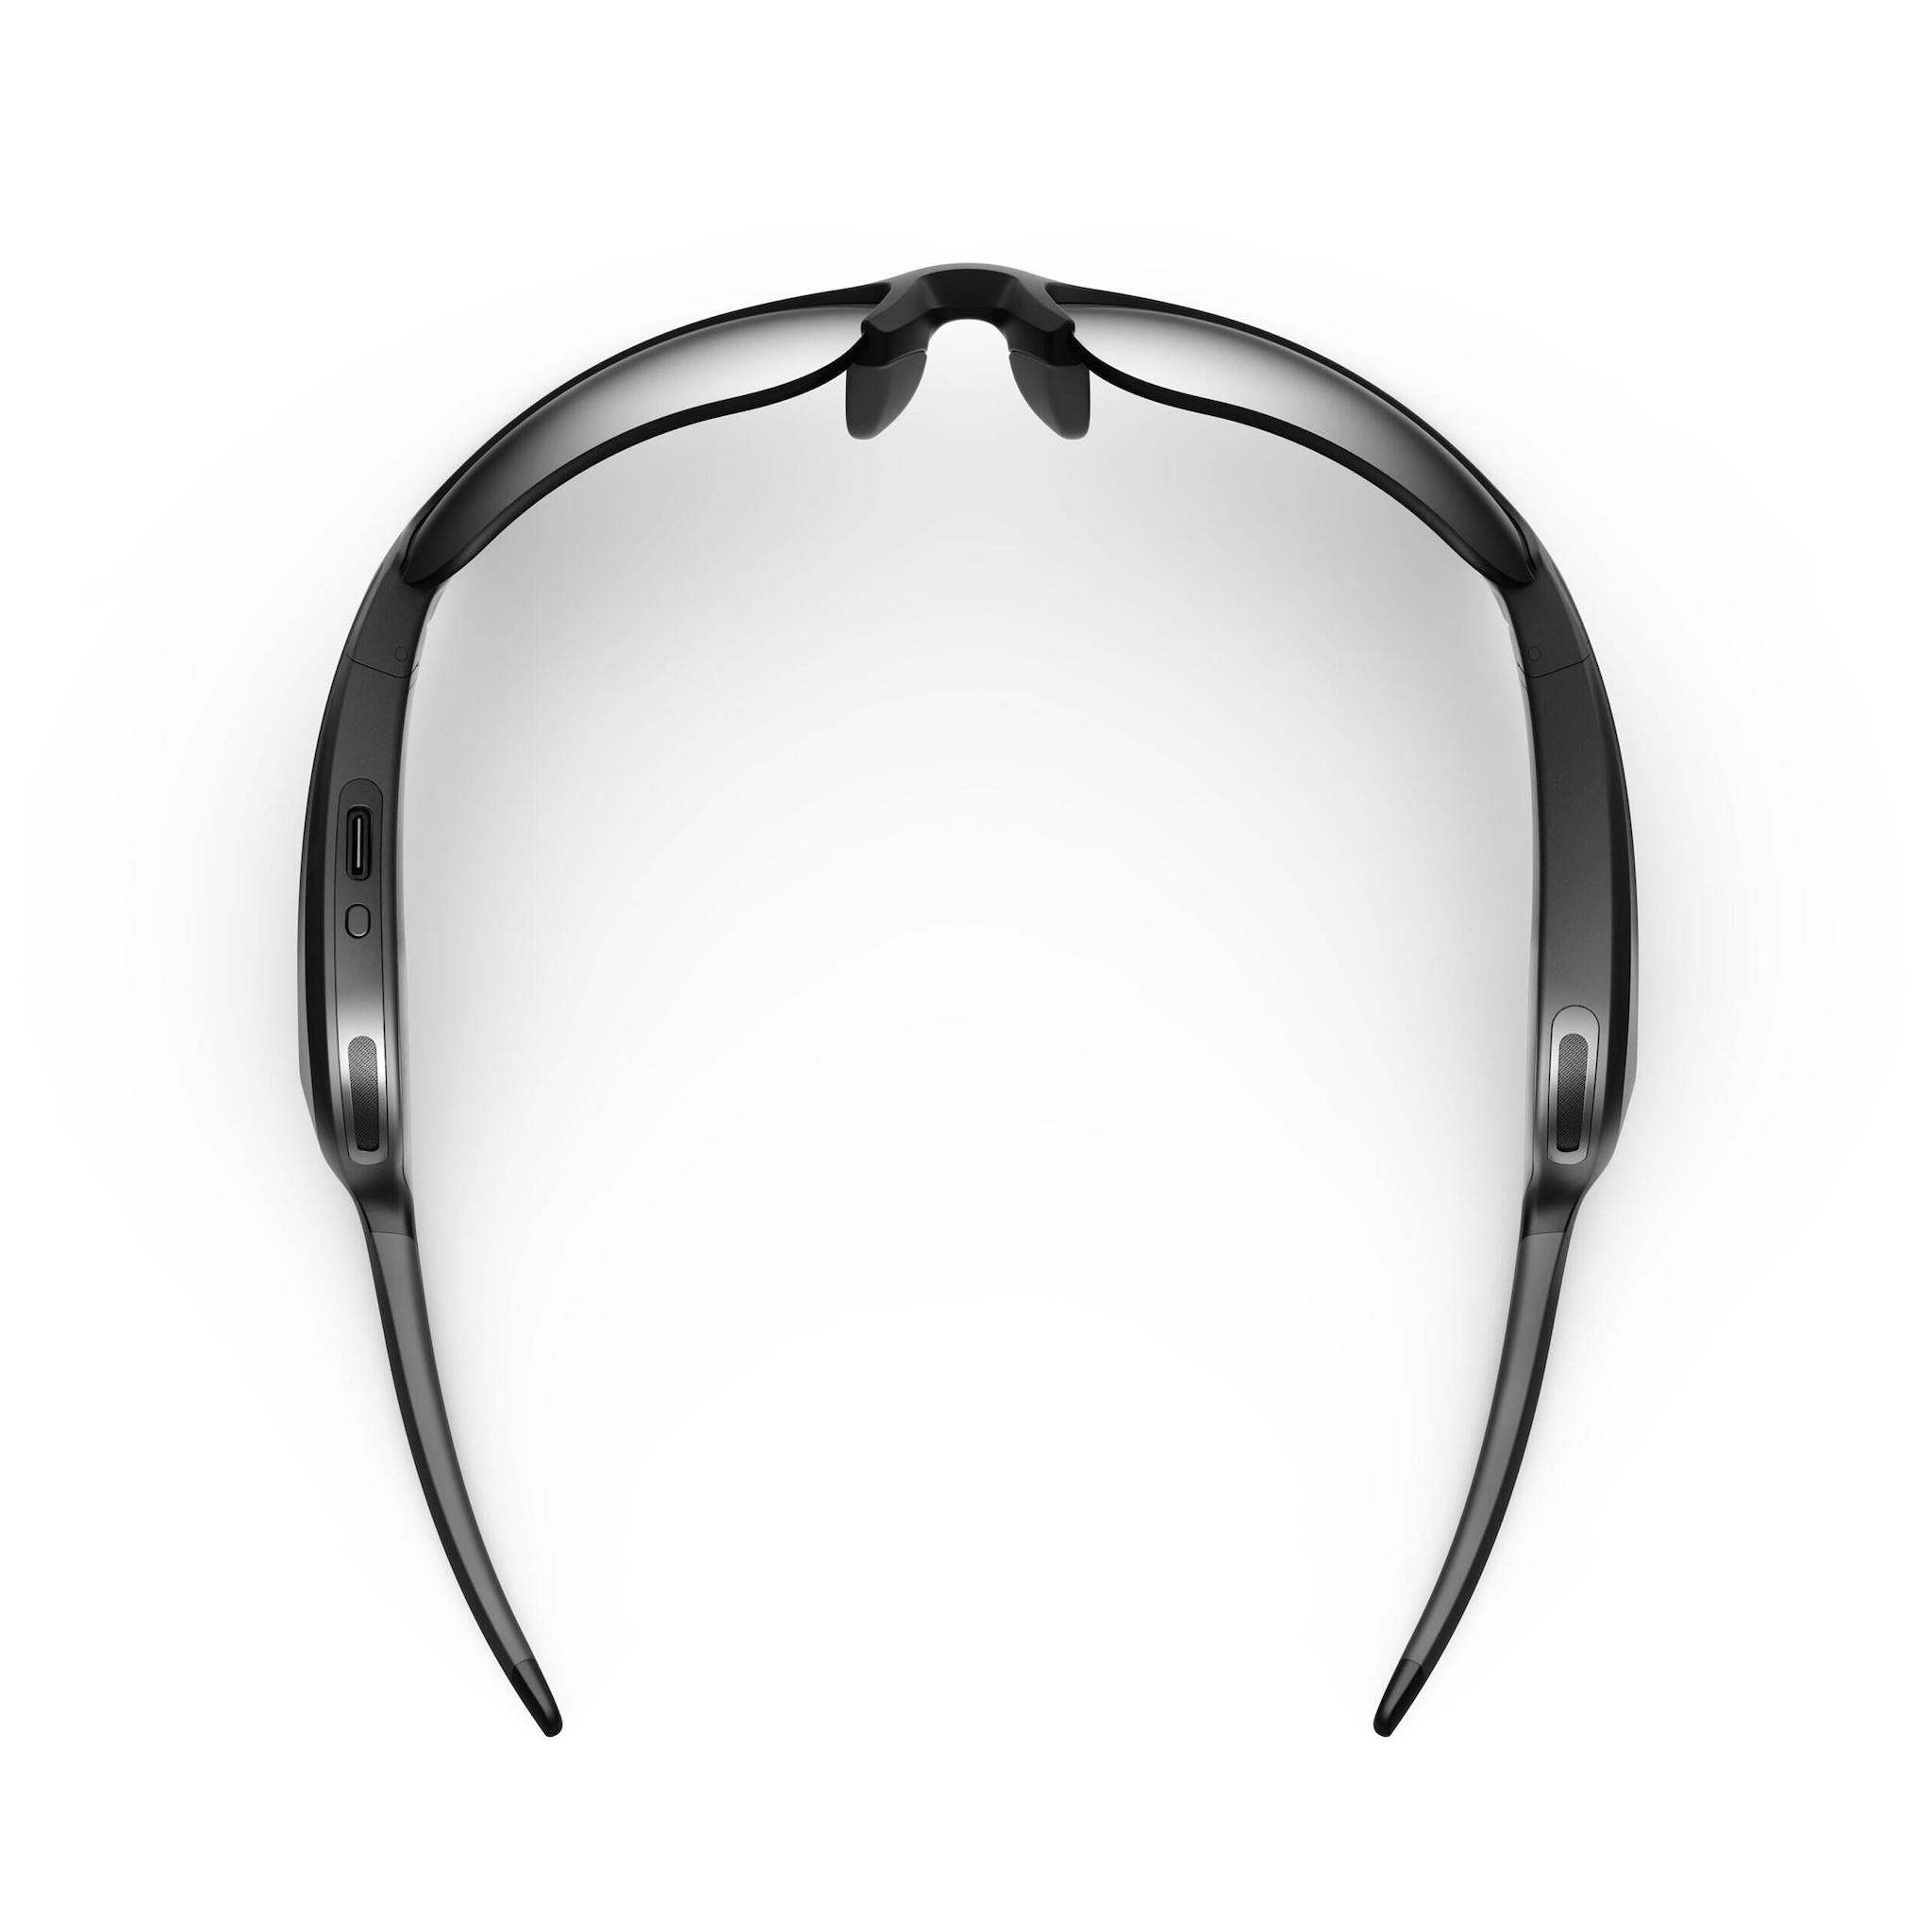 Bose Frames Tempo - Audio Sunglasses, Bose, Audio Sunglasses - AVStore.in